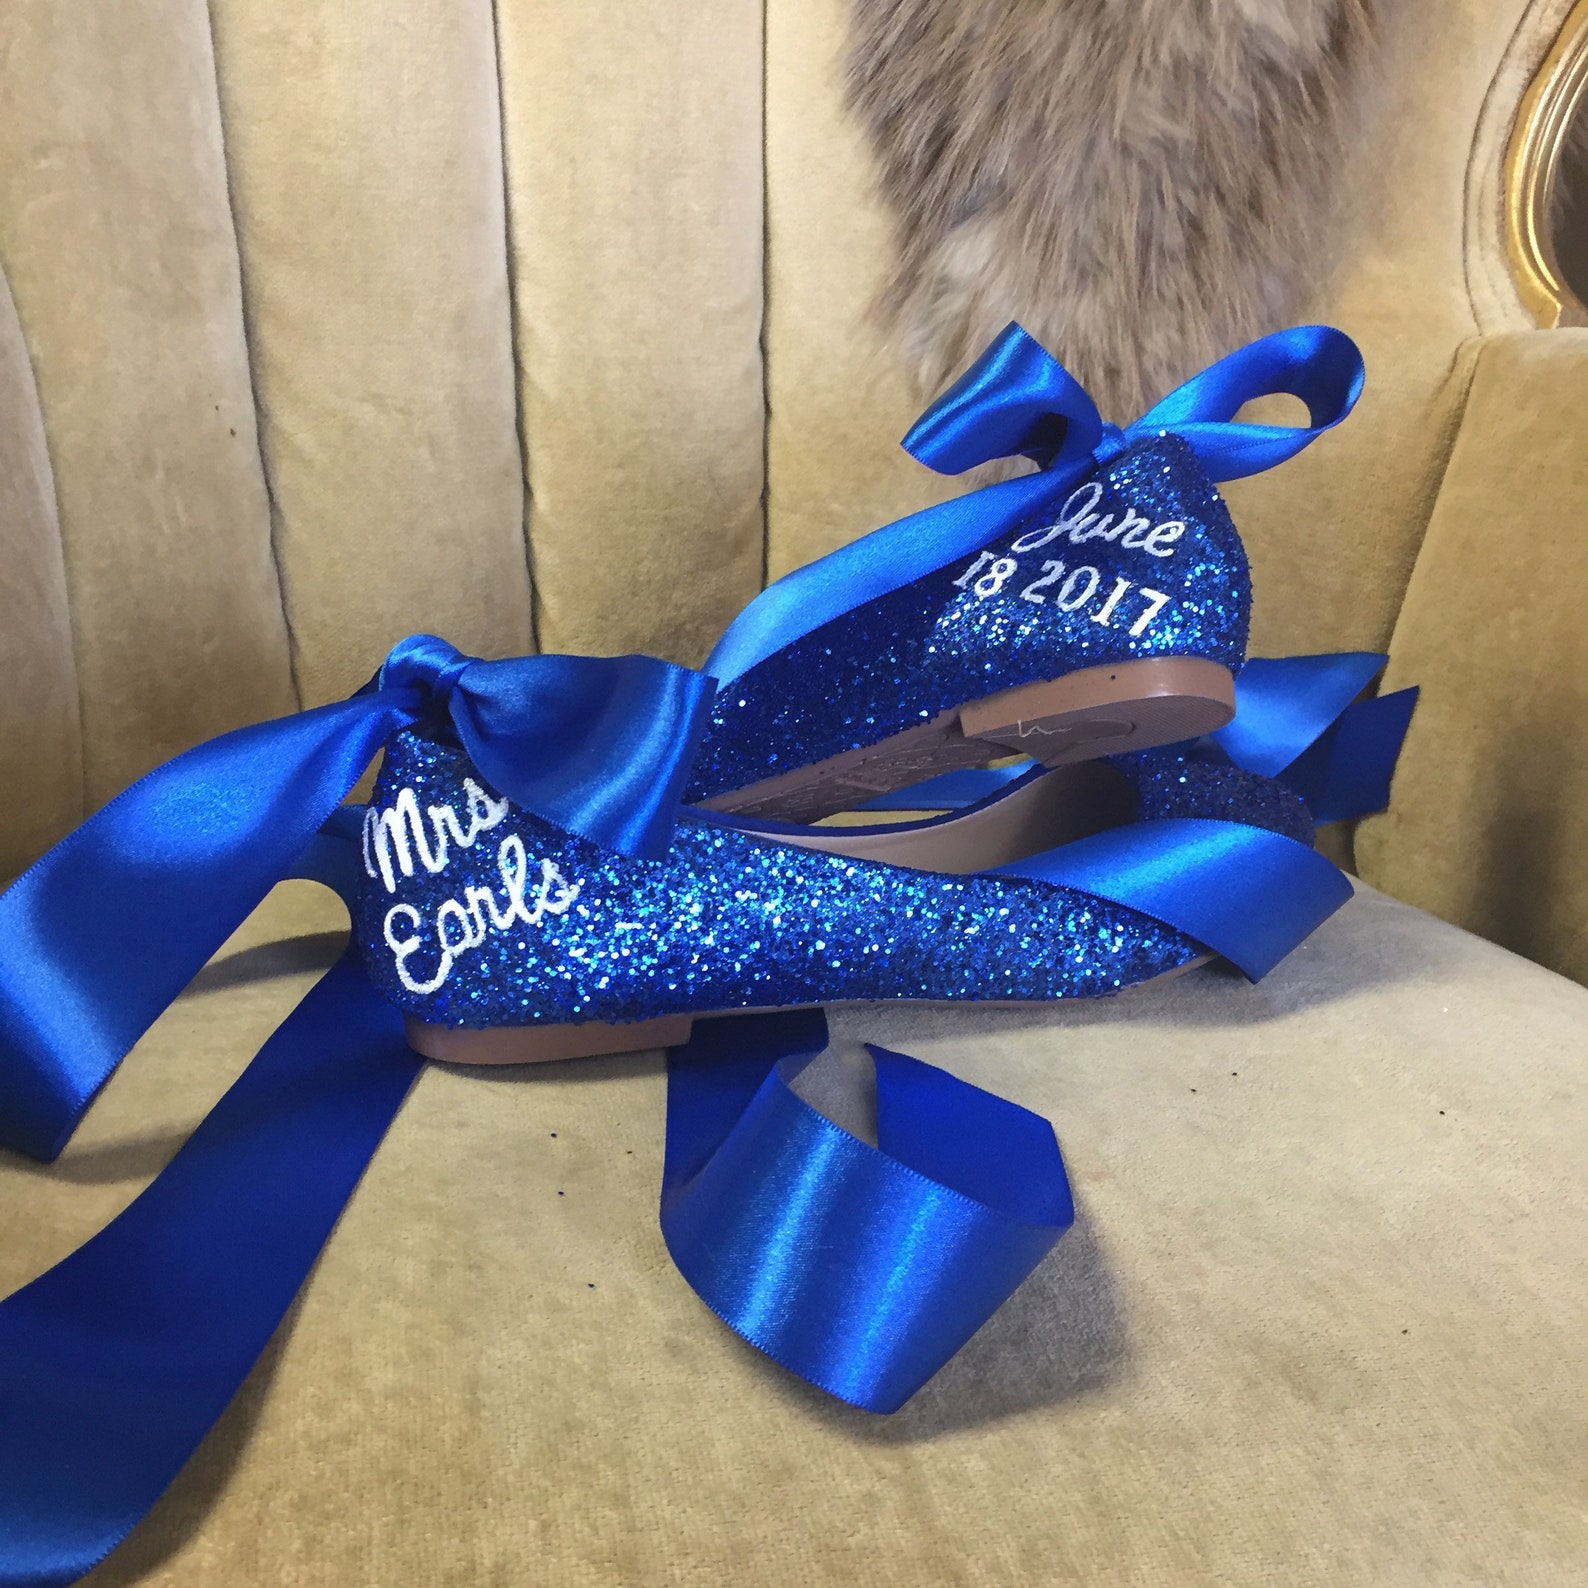 personalized, blue glitter lace up ballet flats with name and wedding date. custom made to order. women's us sizes 5-12